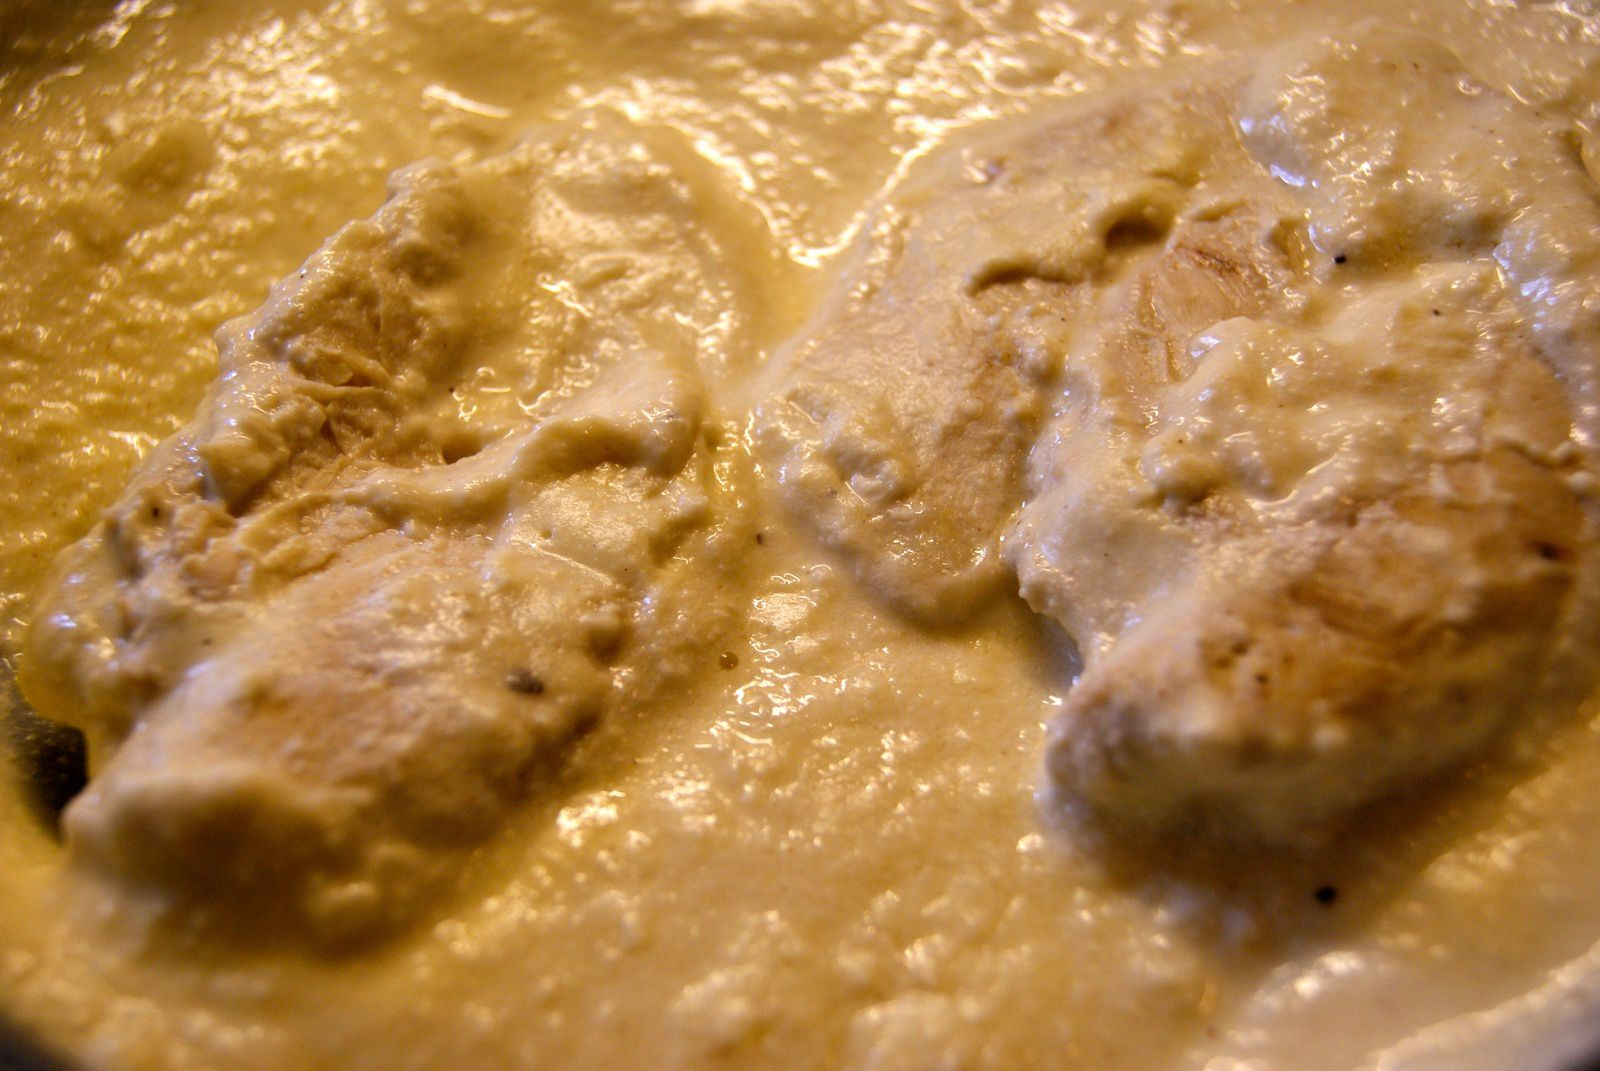 Escalopes de poulet à la moutarde